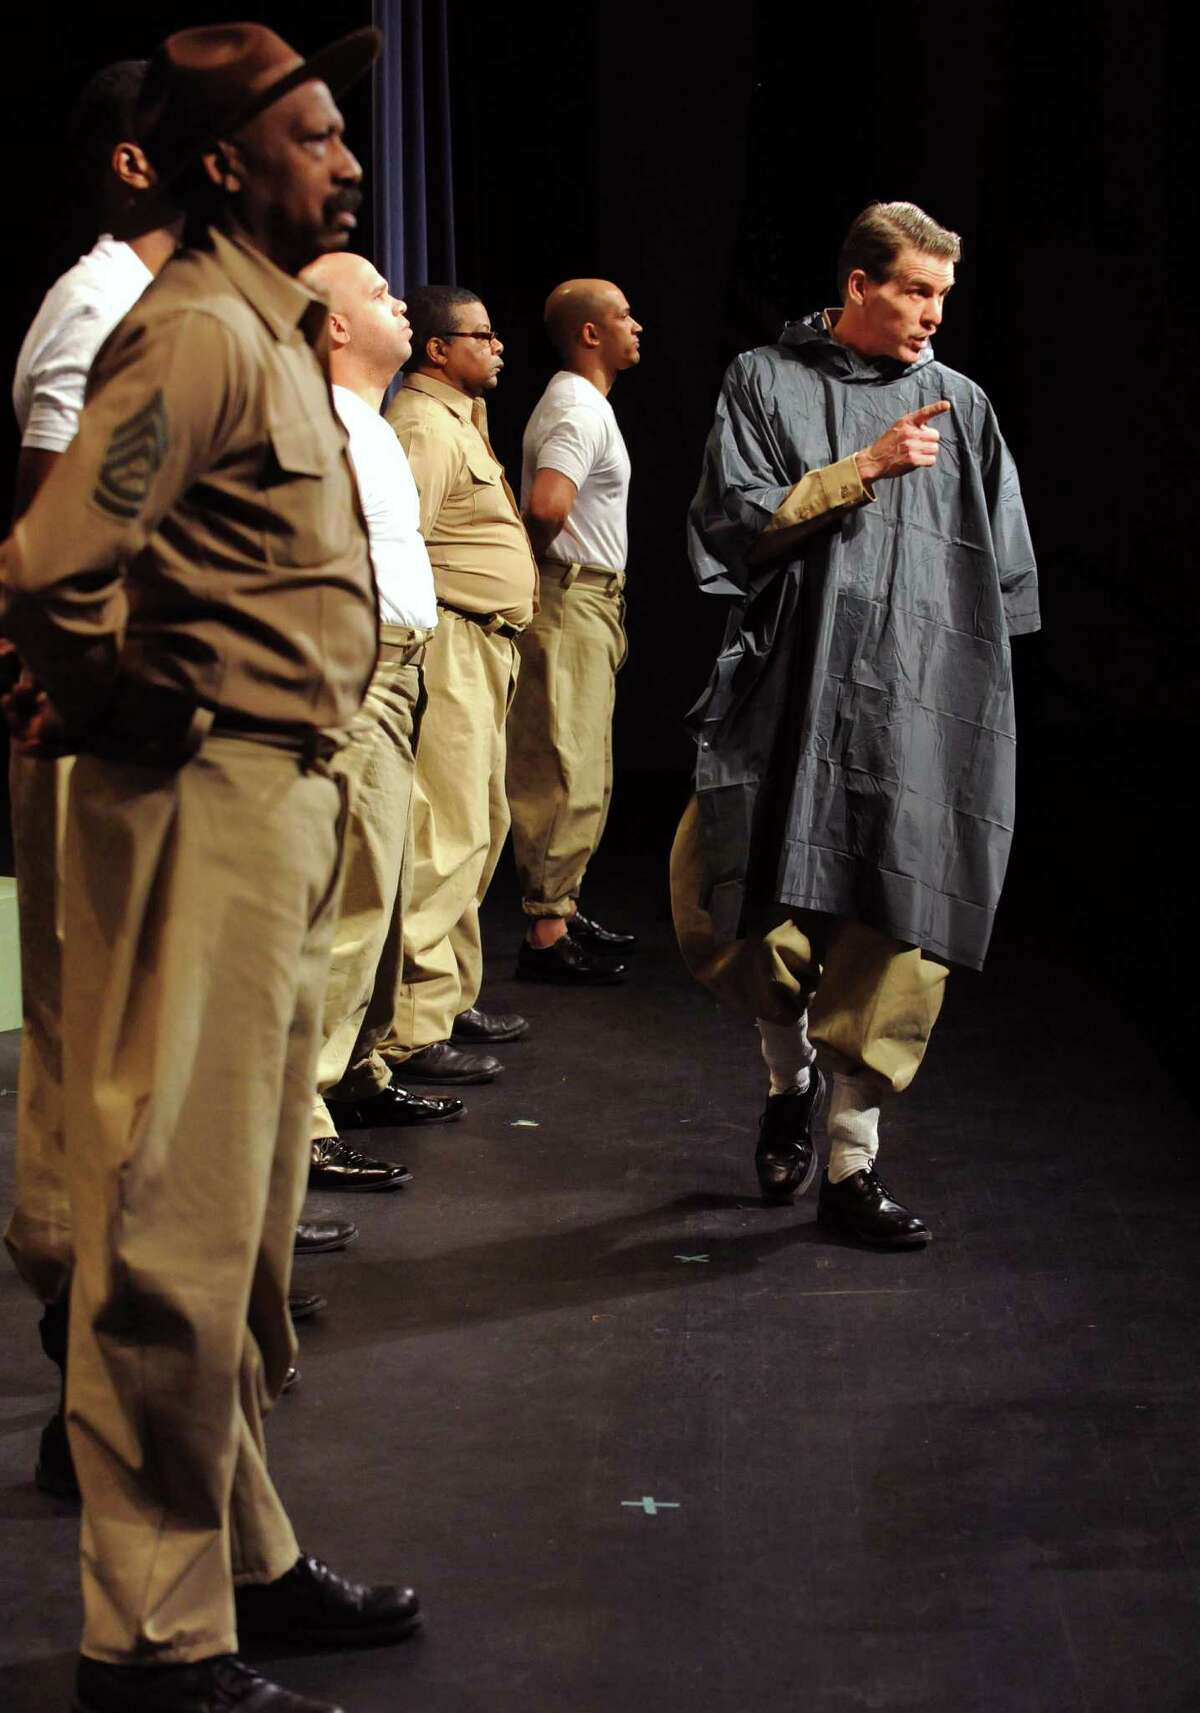 """Actors rehearse for """"Camp Logan,"""" a World War I military drama based on the 1917 Houston Riot between black soldiers and local police, at SCCC on Wednesday Feb. 6, 2013 in Schenectady, N.Y. .(Michael P. Farrell/Times Union)"""